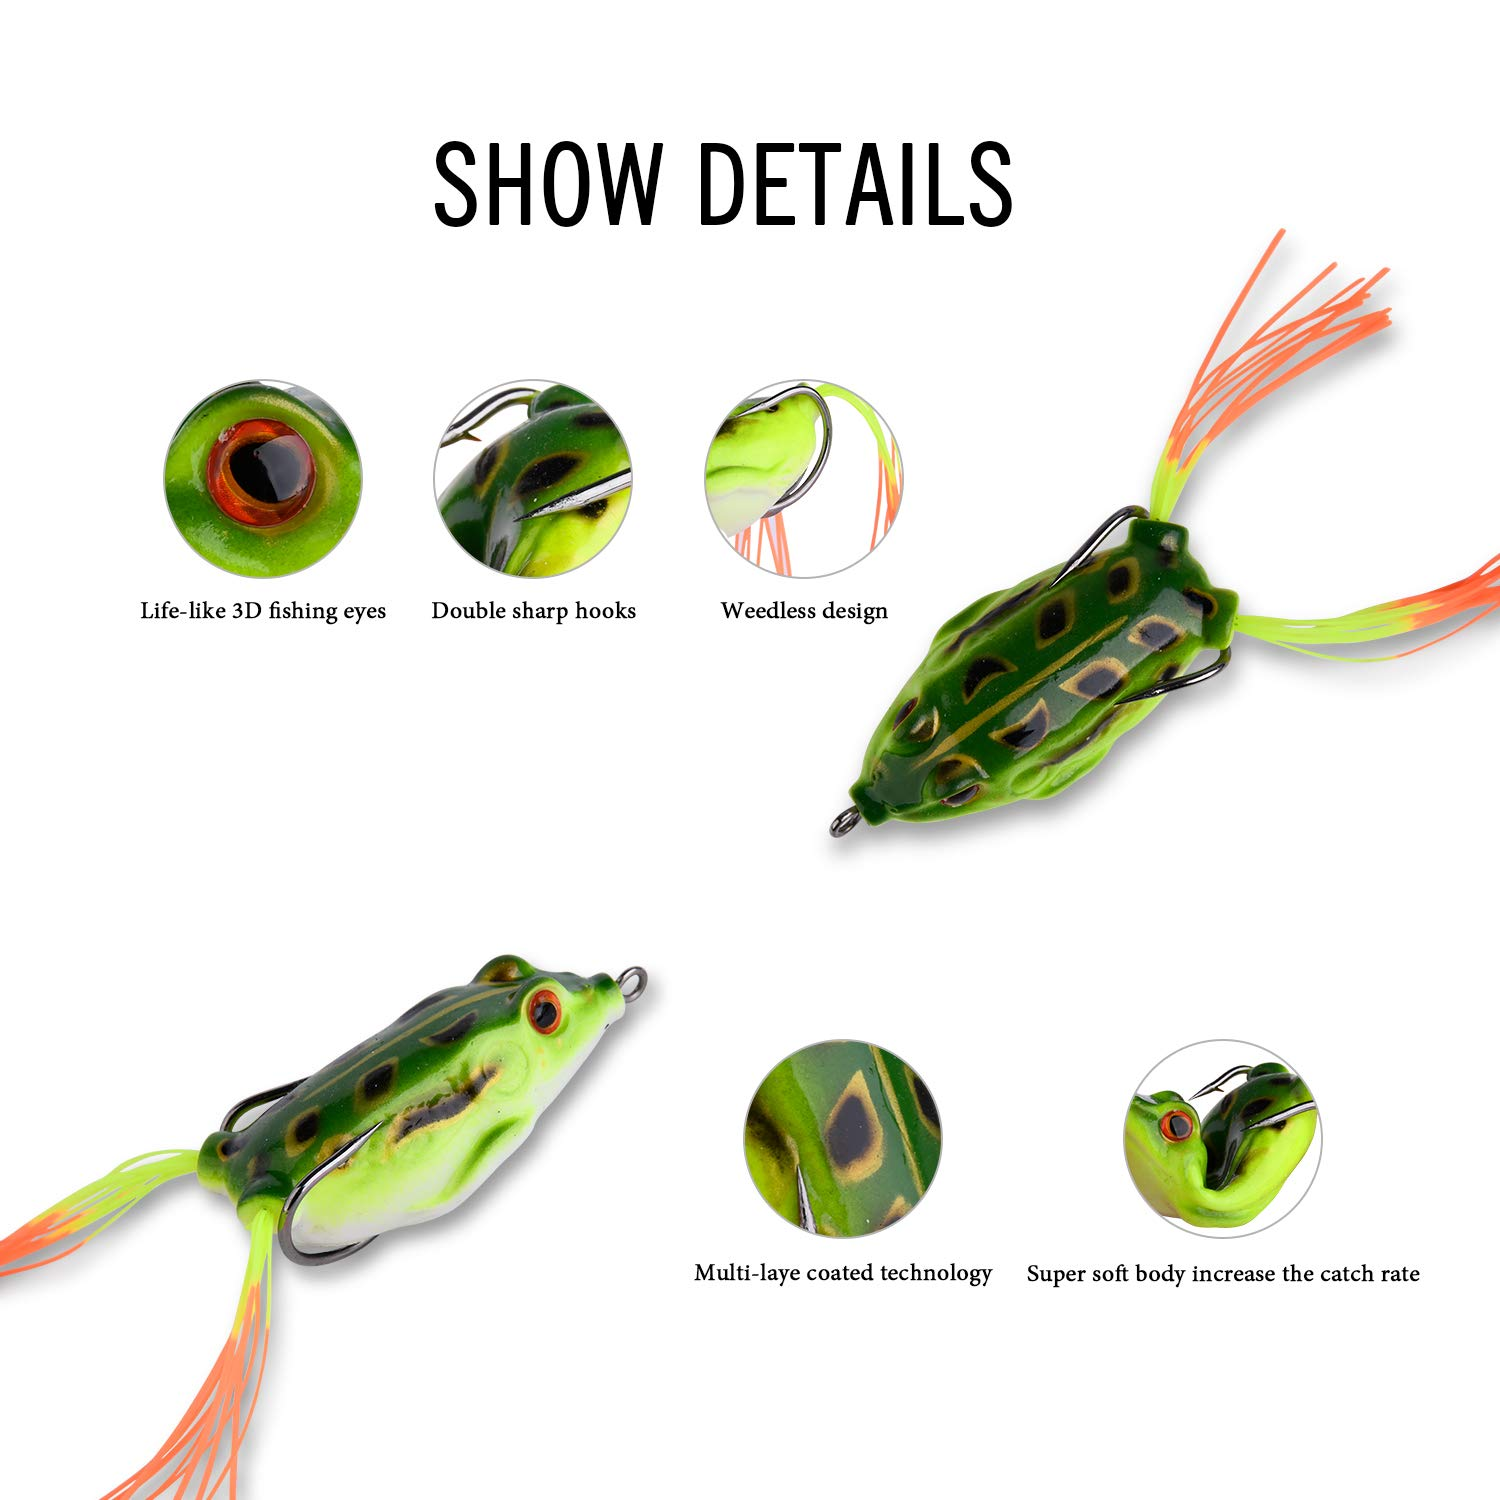 Goture Topwater Frog Fishing Lure Kit Set Lots, Especially For Bass Snakehead,Freshwater Soft Bait